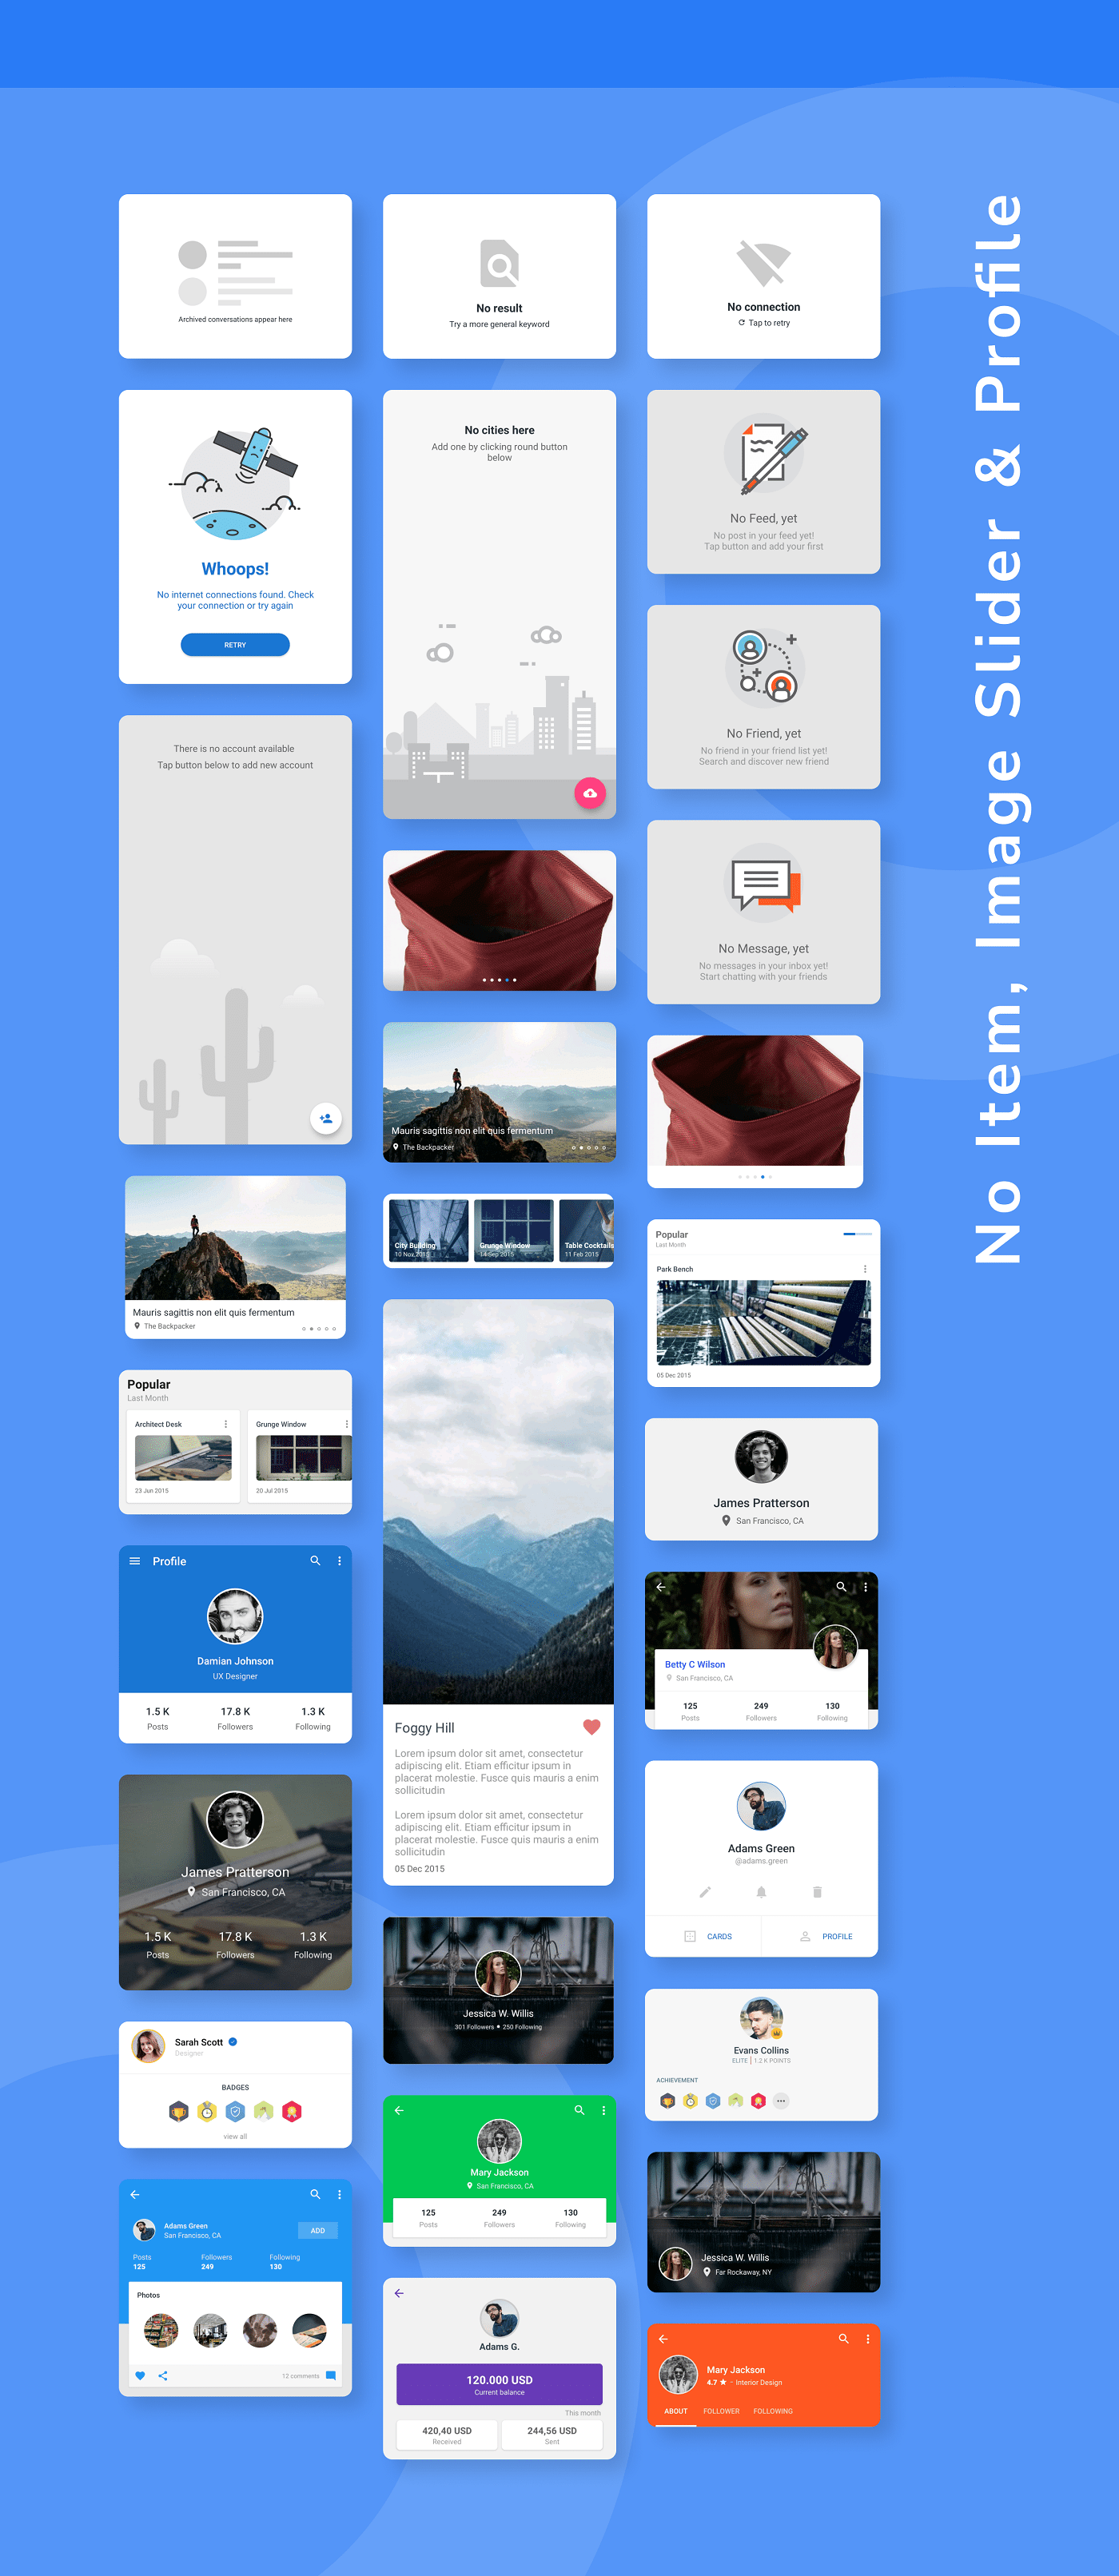 MaterialX - Android Material Design UI Components 2.7 - 23